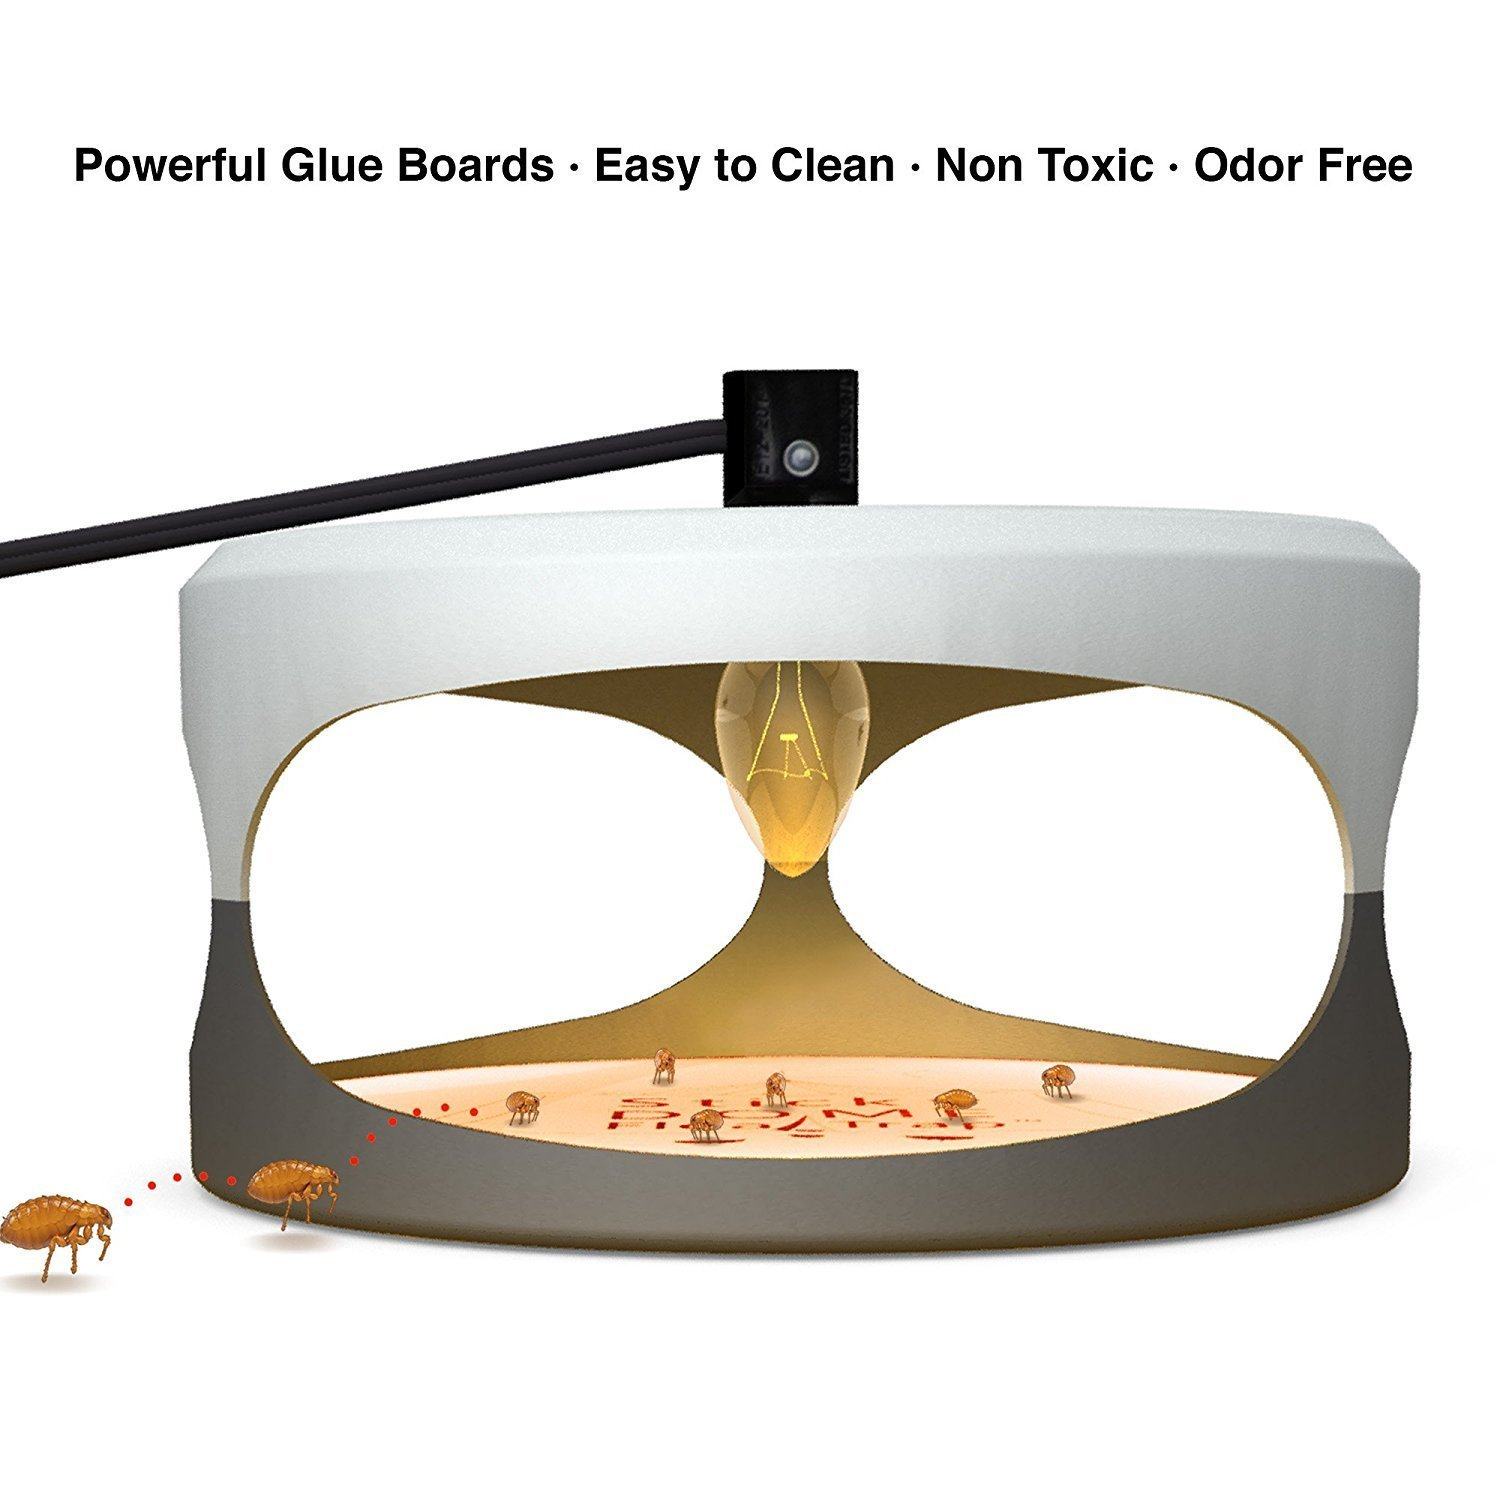 Hoont Indoor Plug-in Electric Sticky Flea Trap with Light and Heat Attracter (Includes 5-Adhesive Glue-Boards) / Eliminates Fleas, Bed Bugs, Flies, Etc. - For Residential and Commercial Use [UPGRADED]